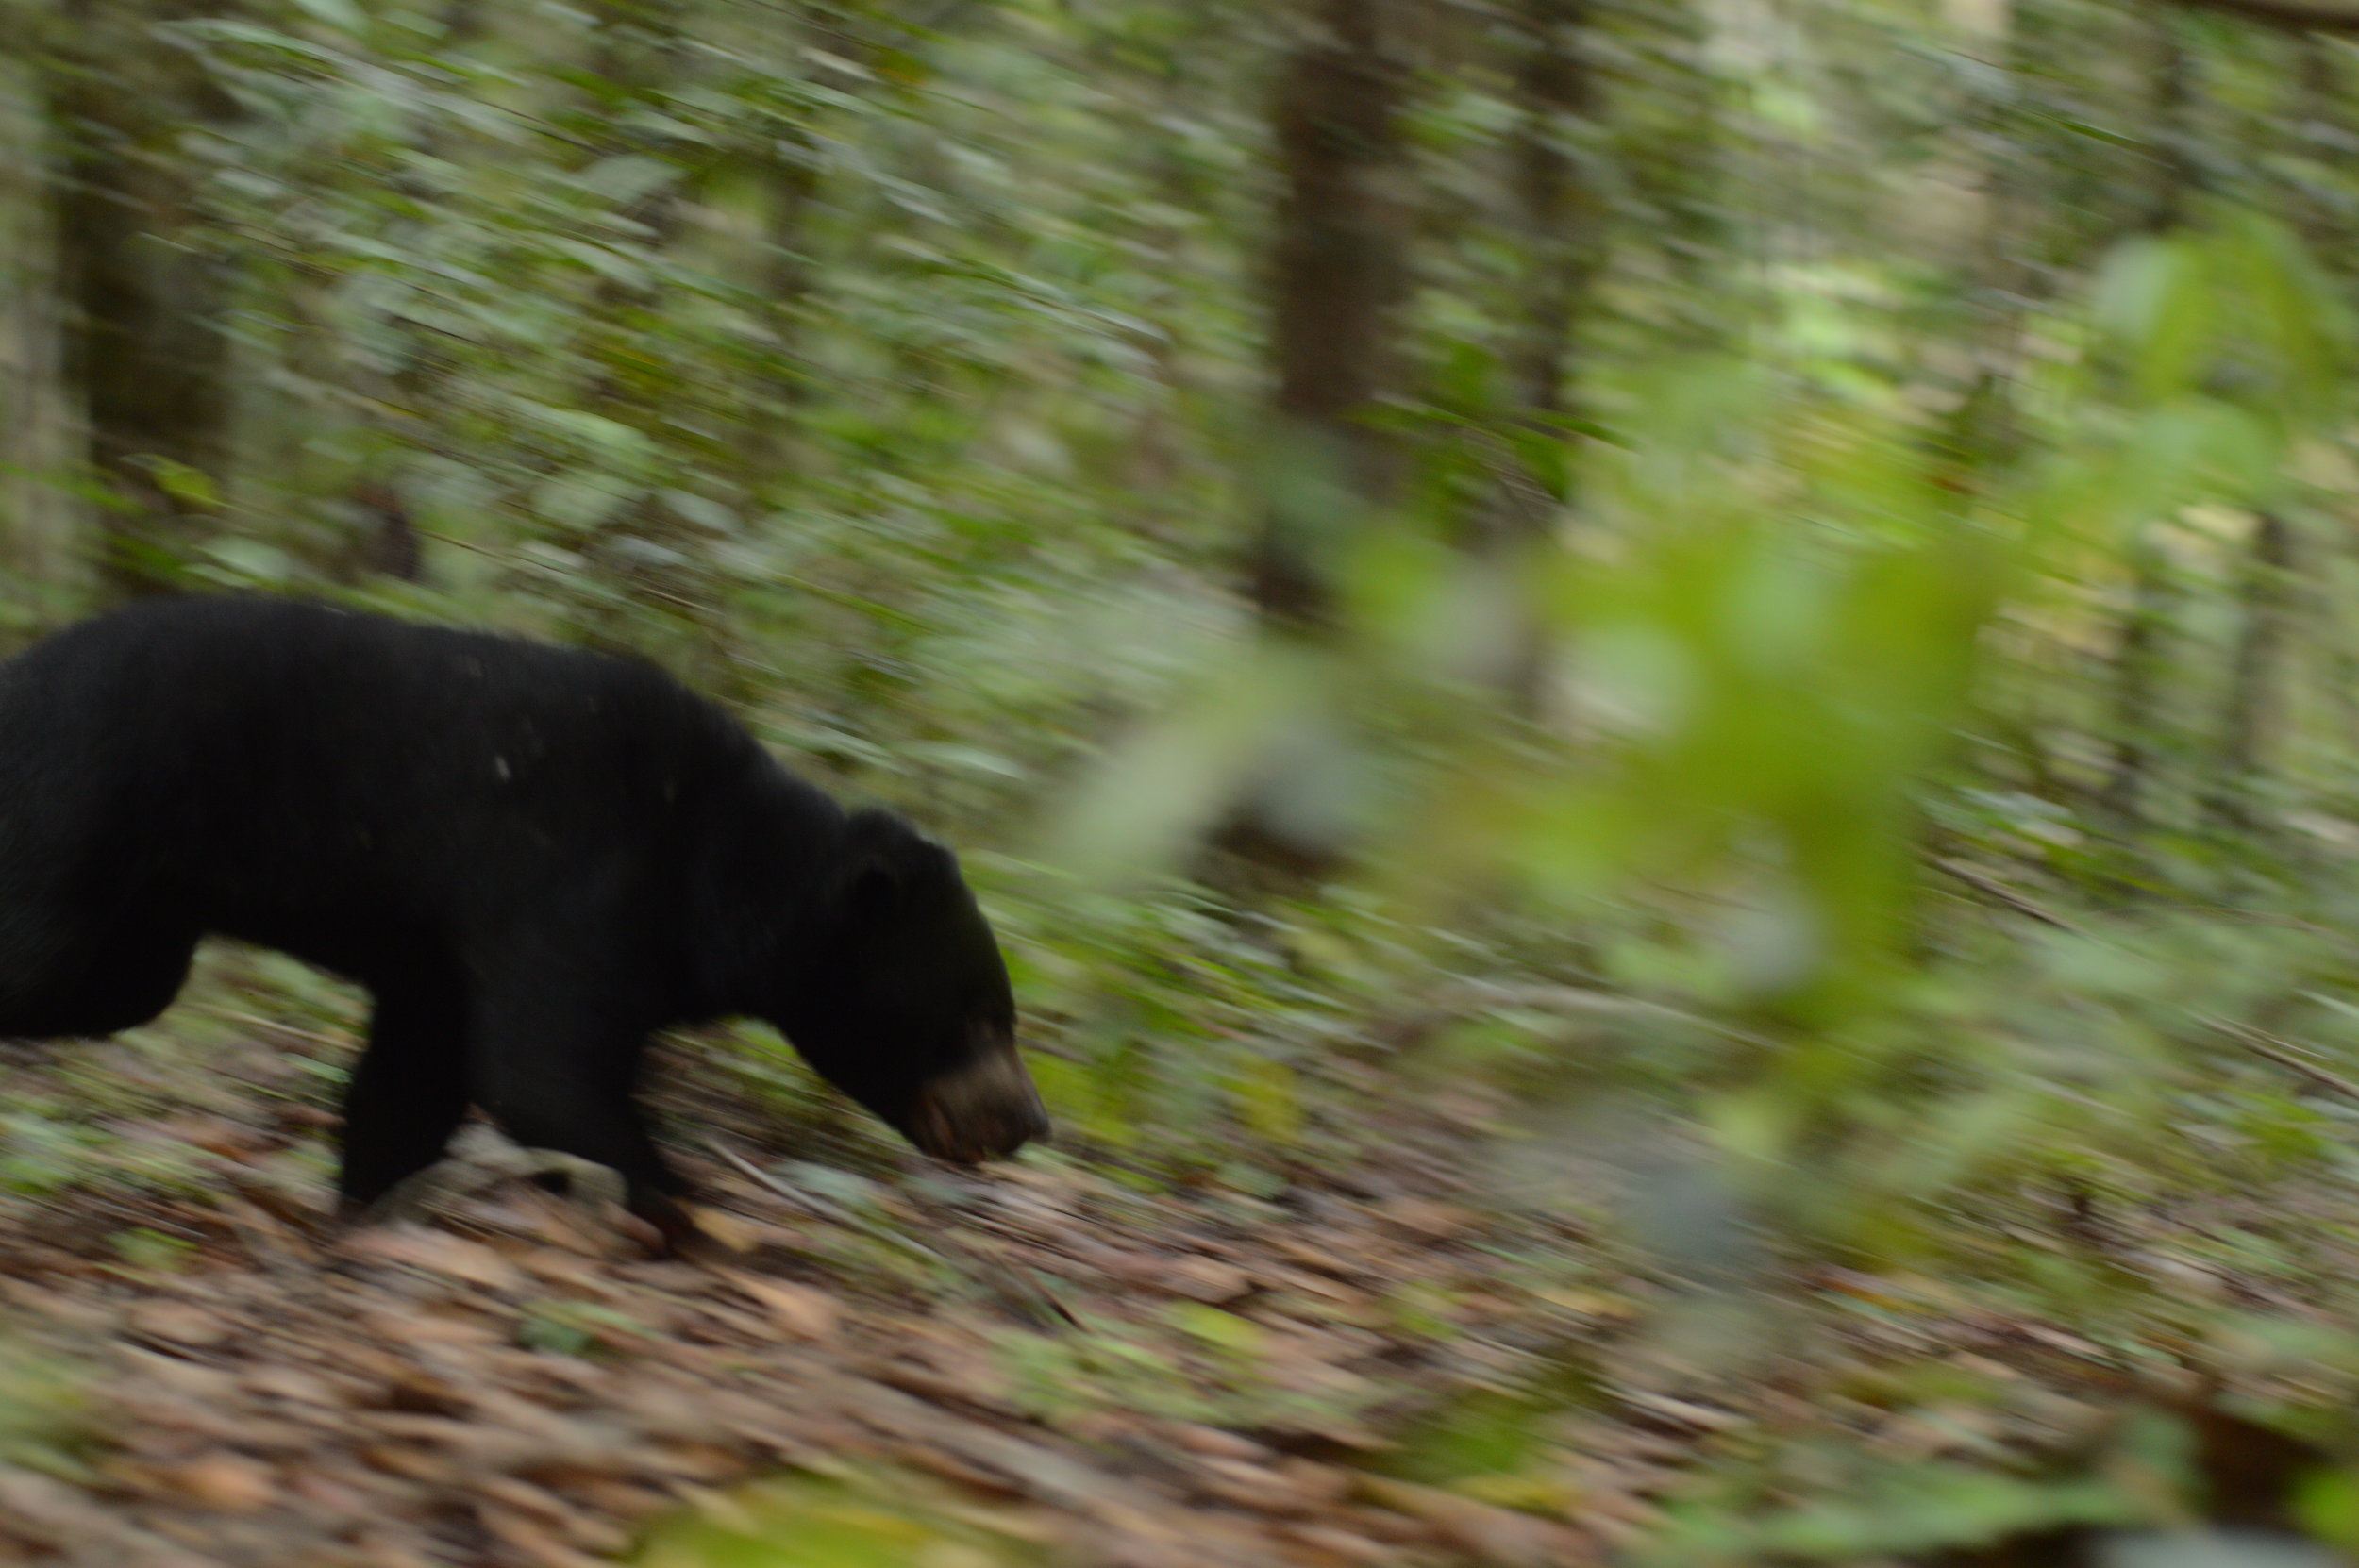 A sunbear pictured shortly after release.